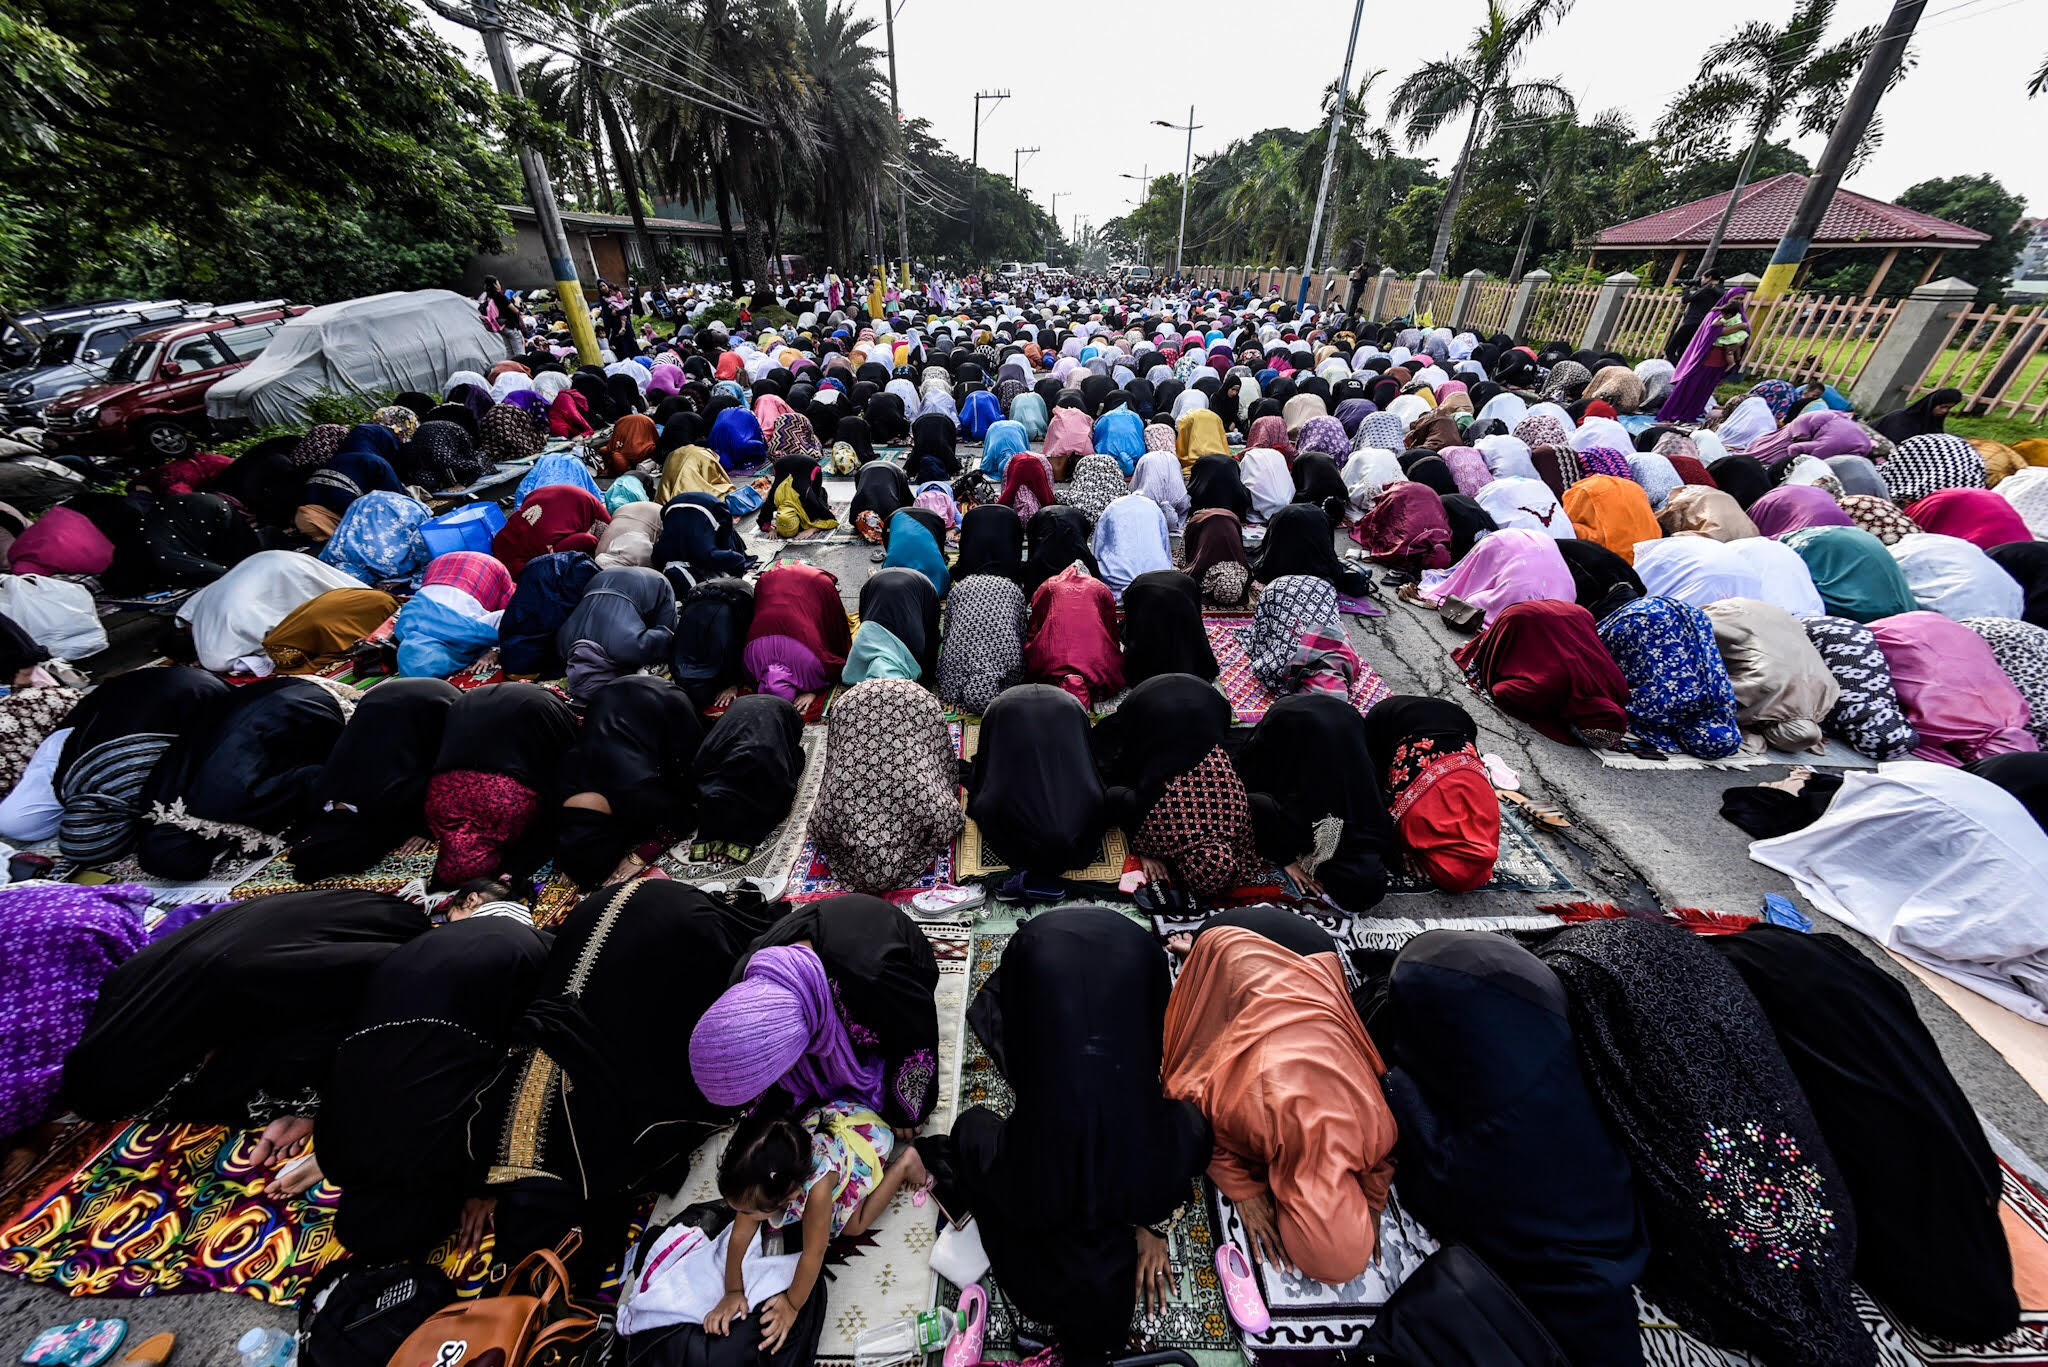 IN PRAYER. Muslims in Taguig pray during the Eid'l Adha celebration on August 21, 2018. Photo by Maria Tan/Rappler